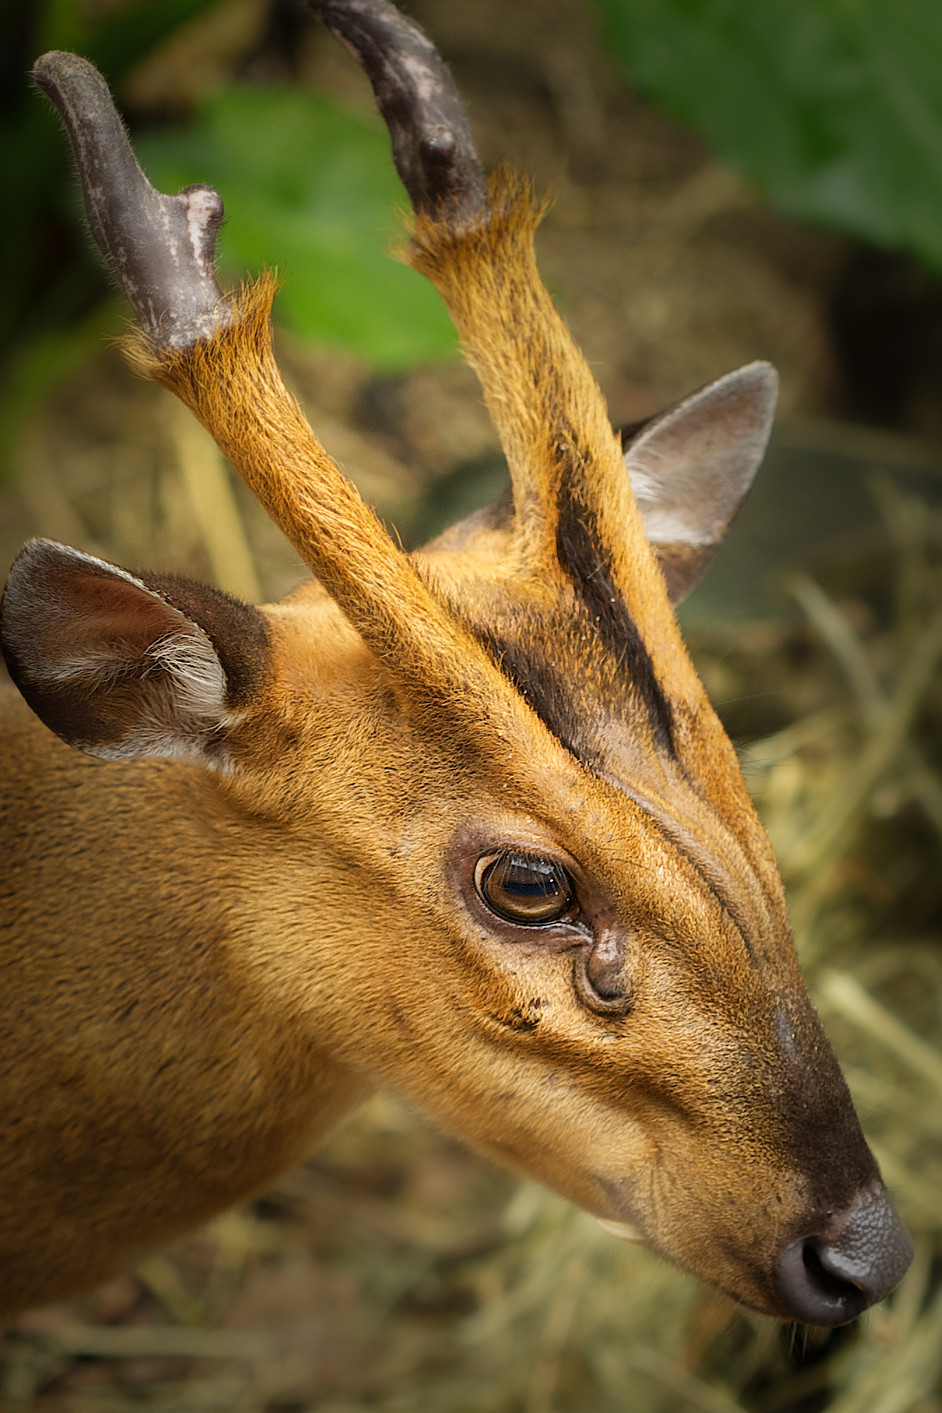 The barking deer